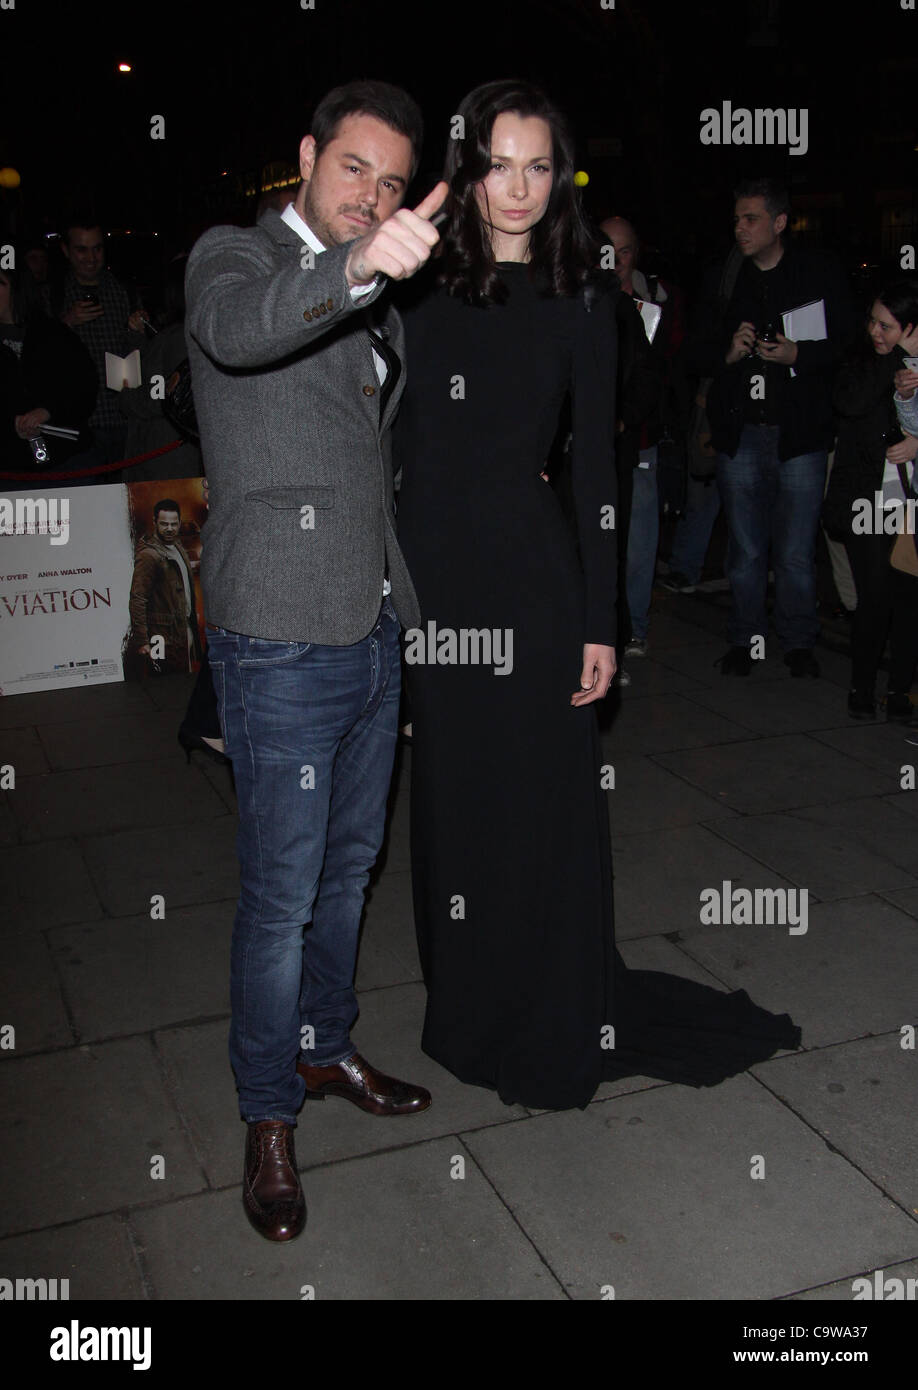 London, UK, 23/02/2012 Danny Dyer & Anna Walton arrive for the 'Deviation' world premiere at the Odeon - Stock Image